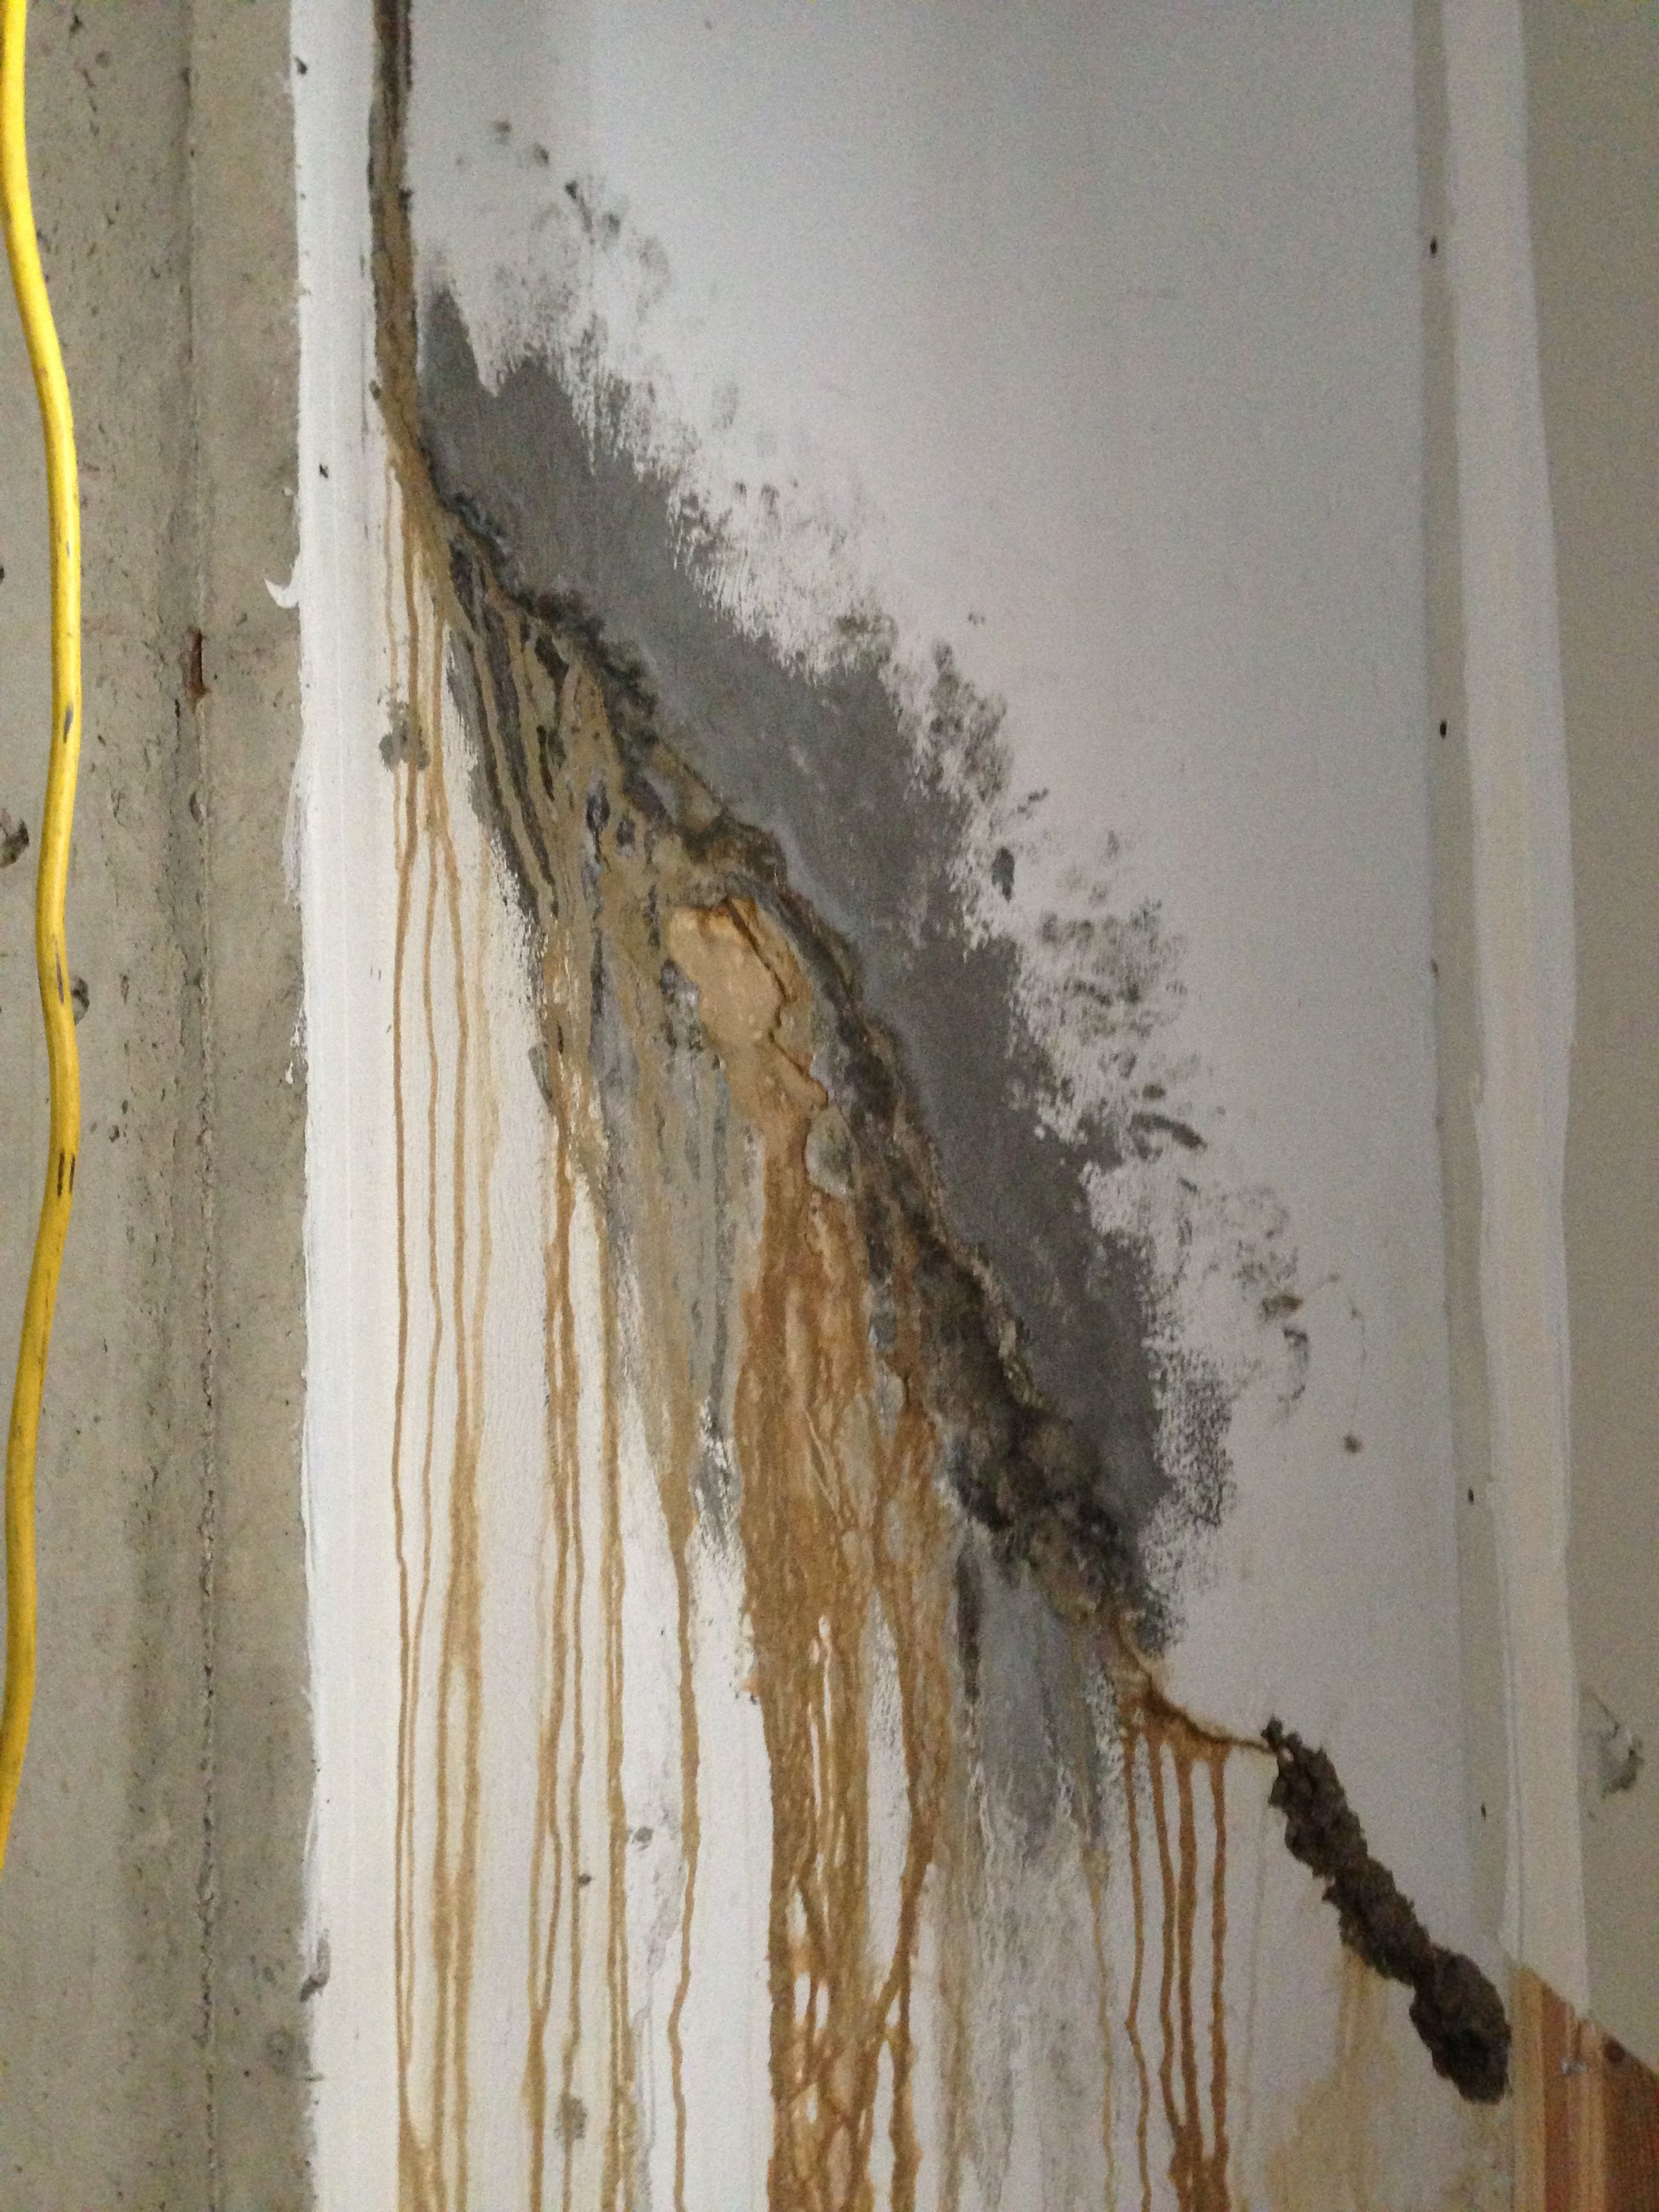 Poured Concrete Basement Wall Crack And Leaking In Saline